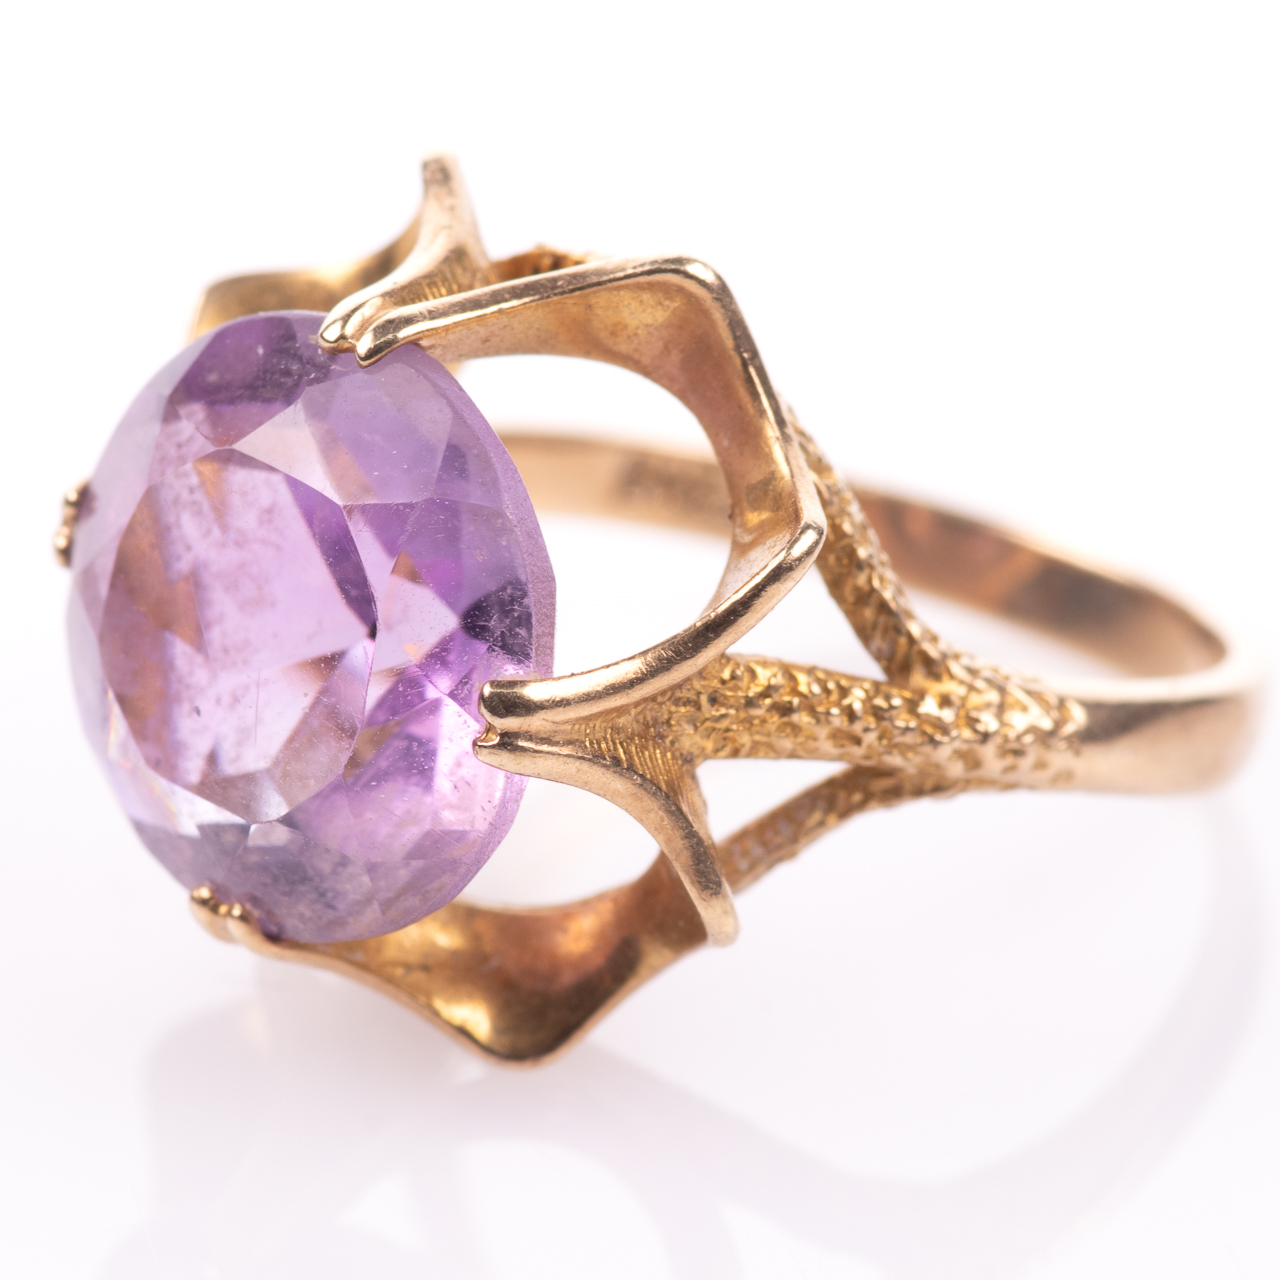 9ct Gold 6.45ct Amethyst Ring London 1974 - Image 4 of 8